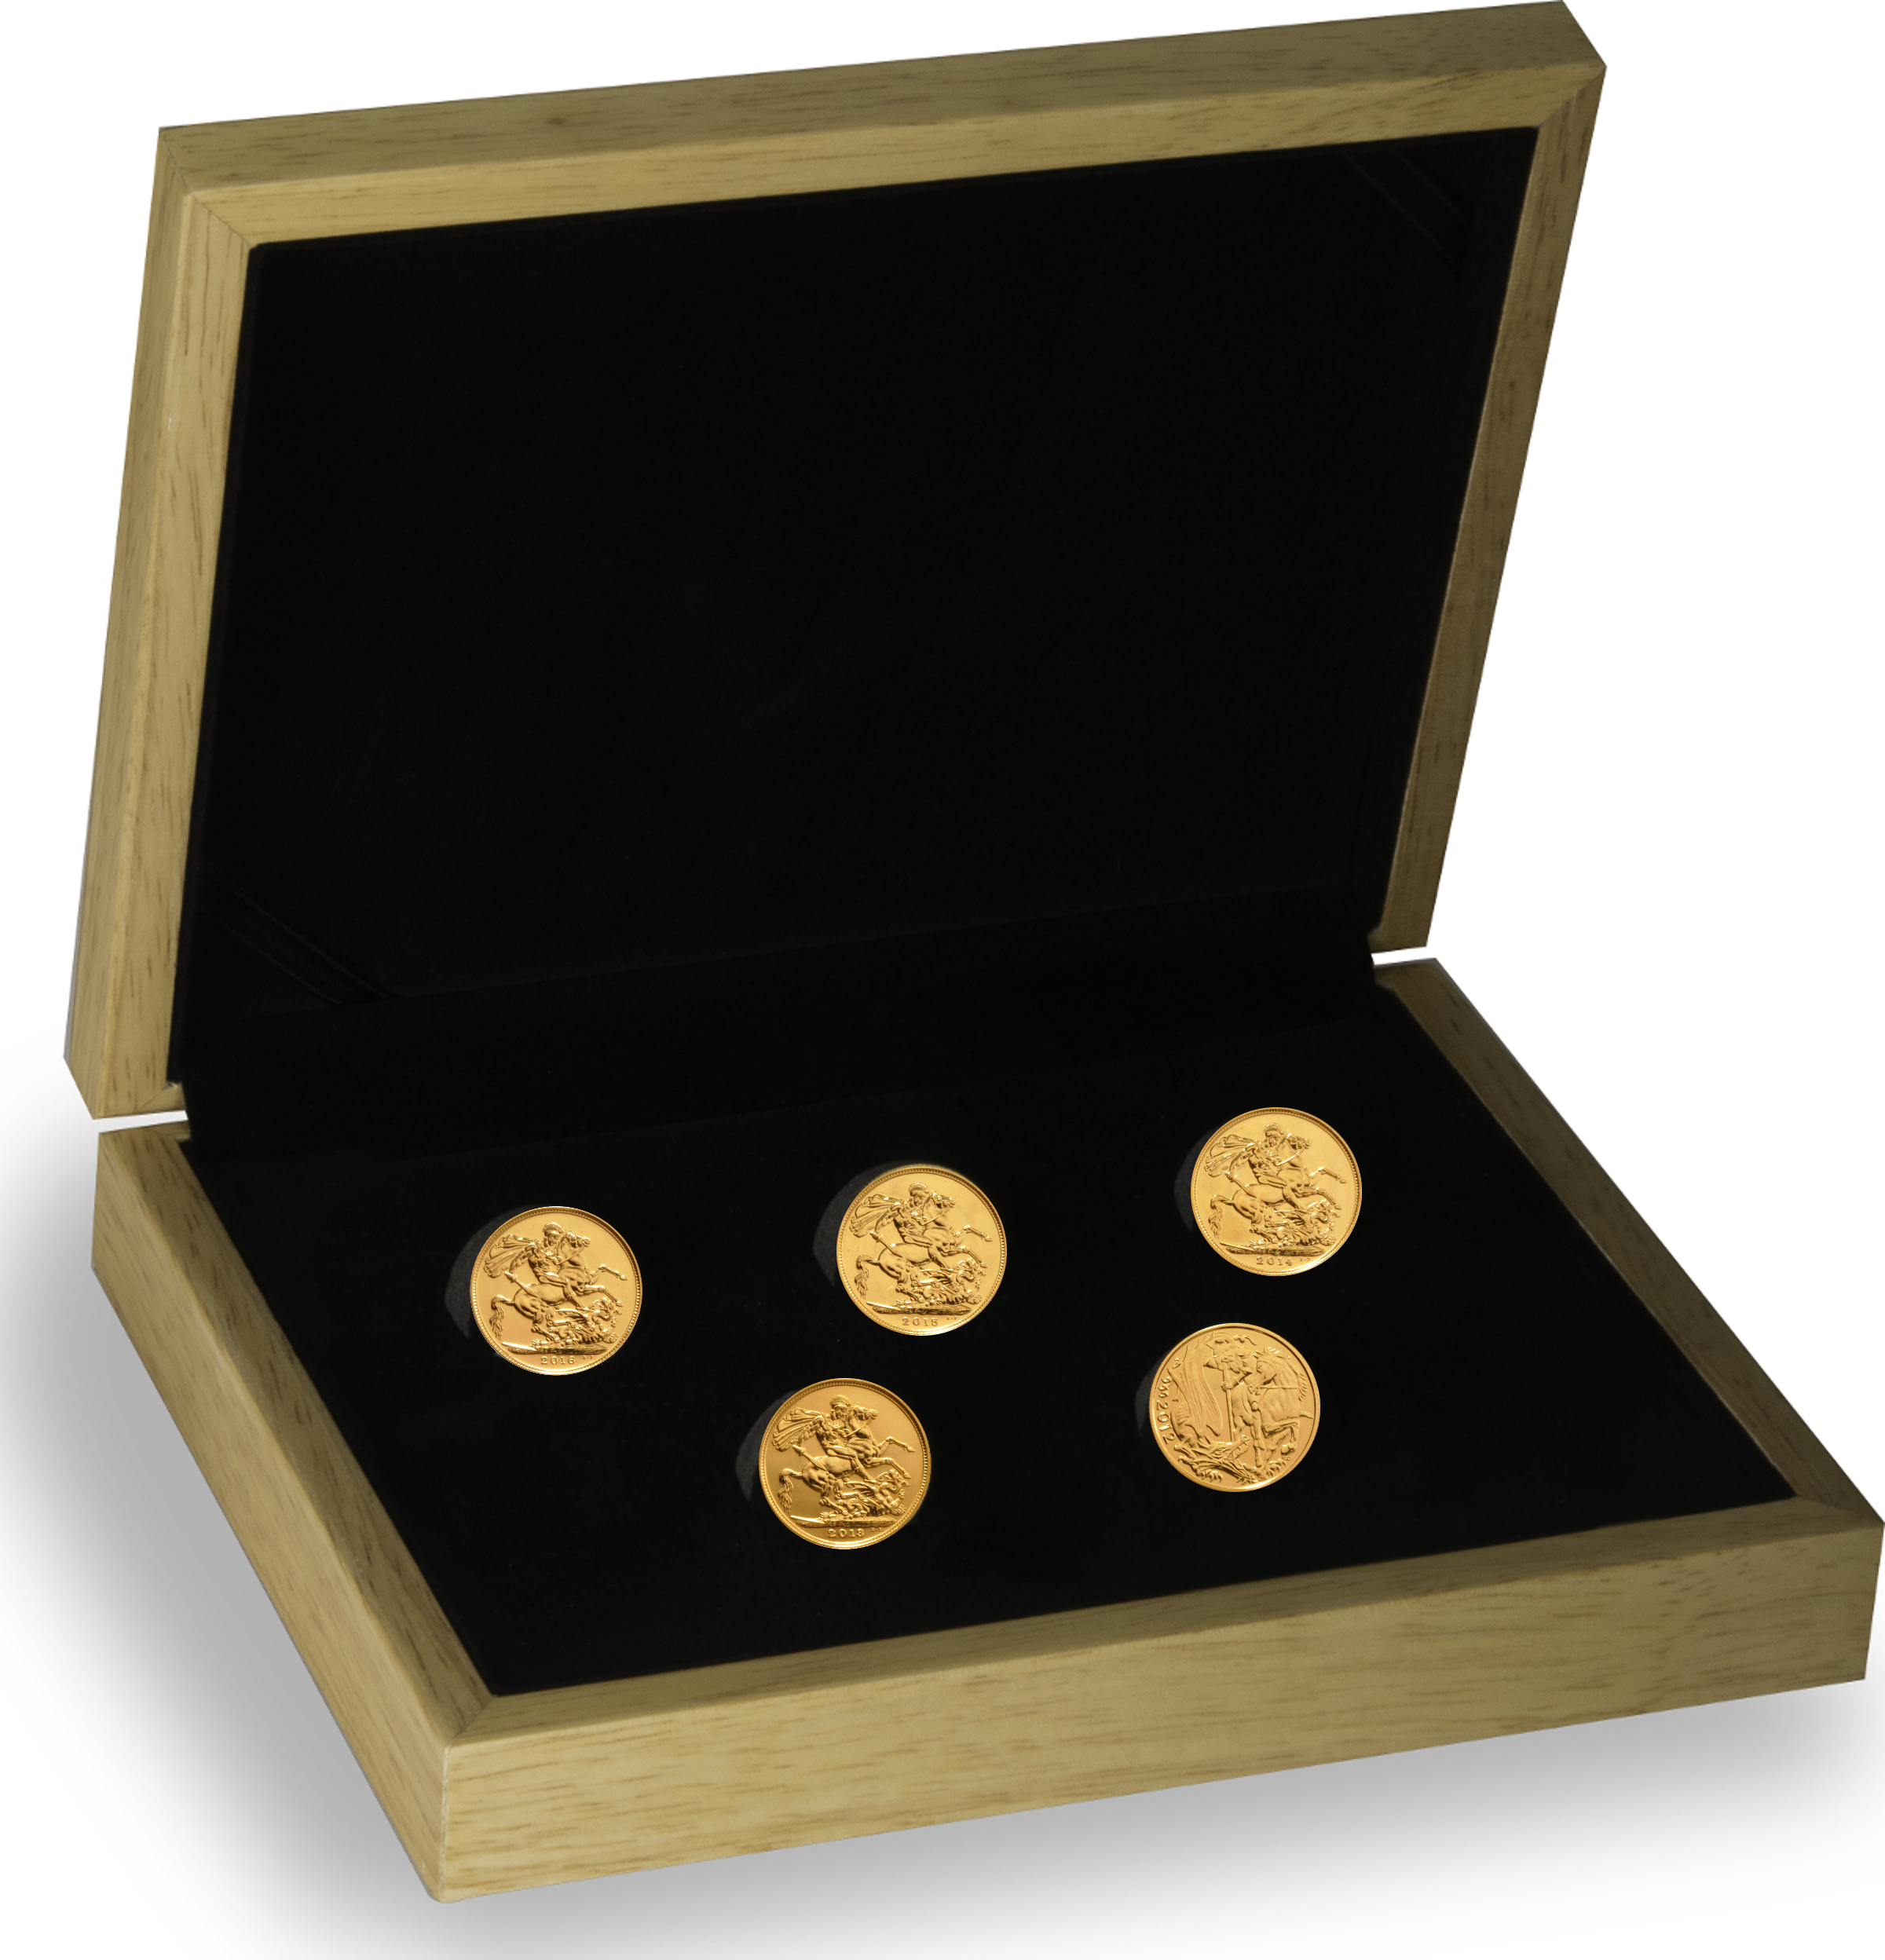 5 x Gold Sovereign years 2016 - 2012 in a gift box